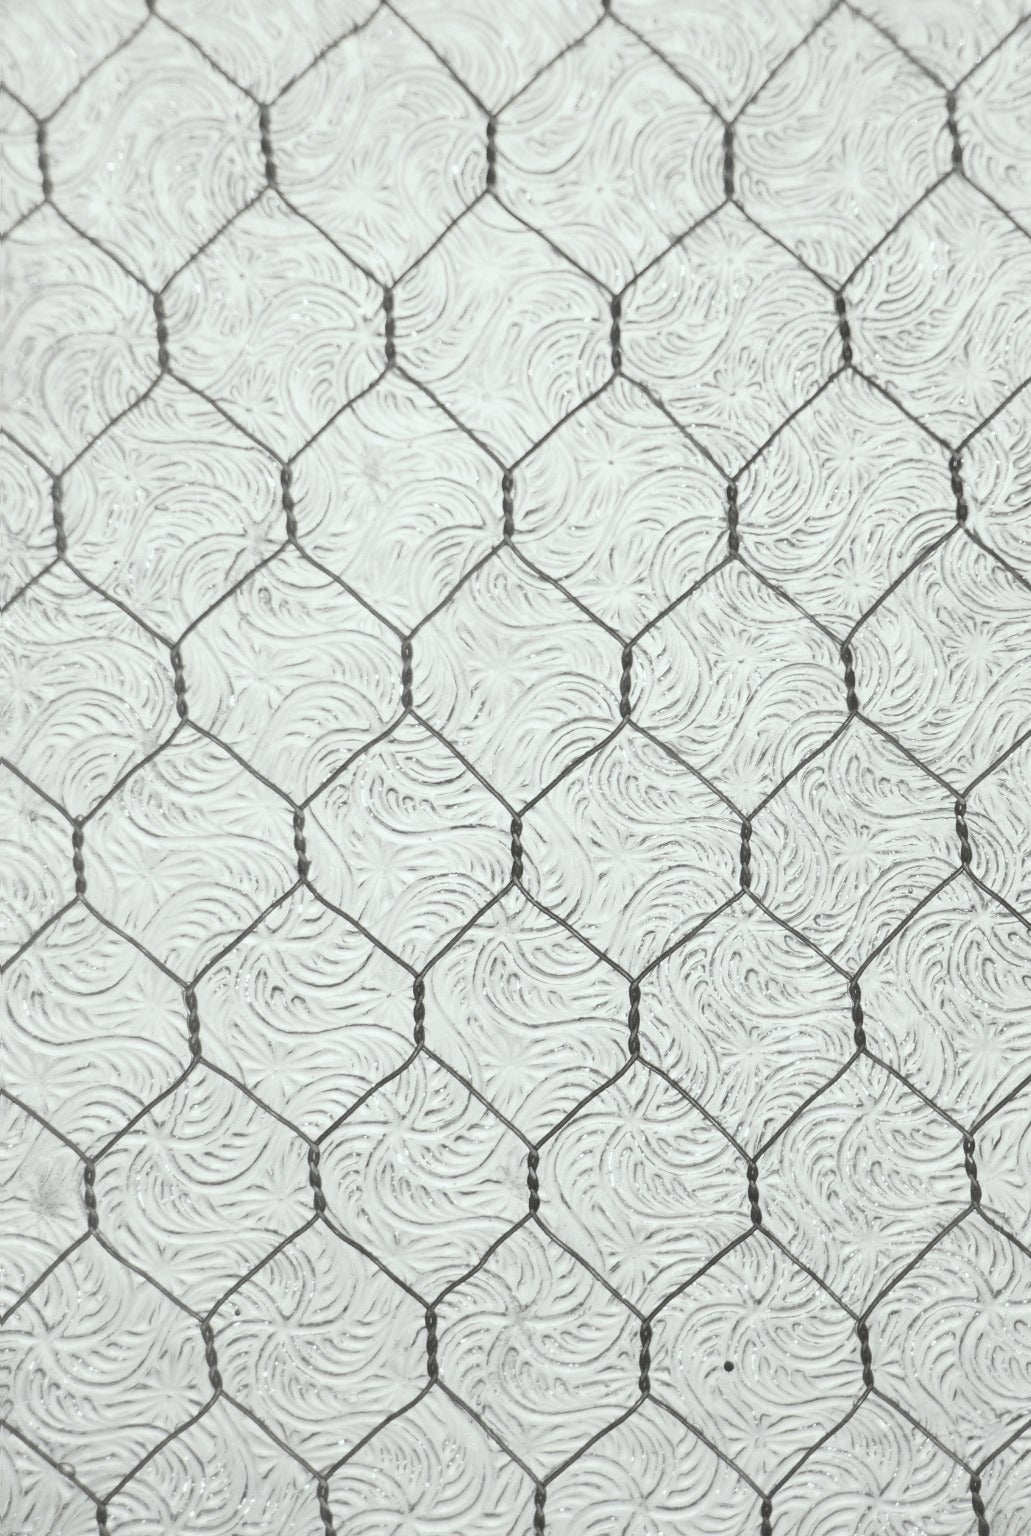 1920s Wormy Vintage Chicken Wire Glass For Sale at 1stdibs